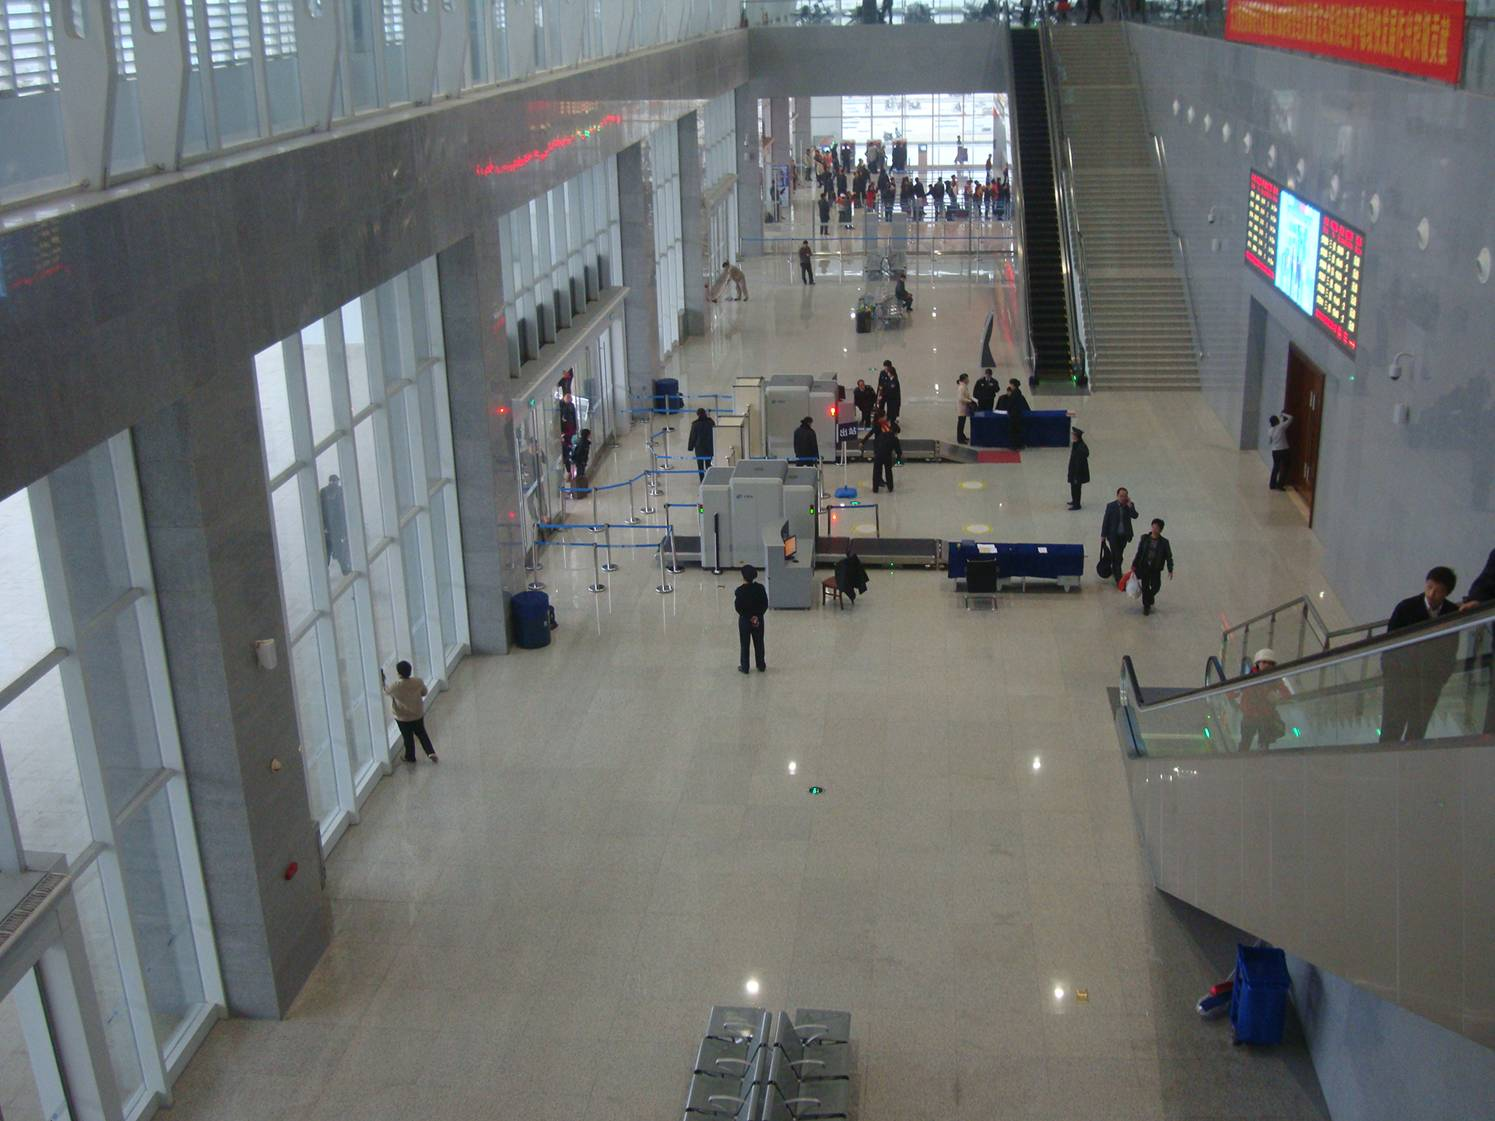 Picture:  The clean and shiny train station in Haikou where you catch the fast train to Sanya.  Hainan Island, China